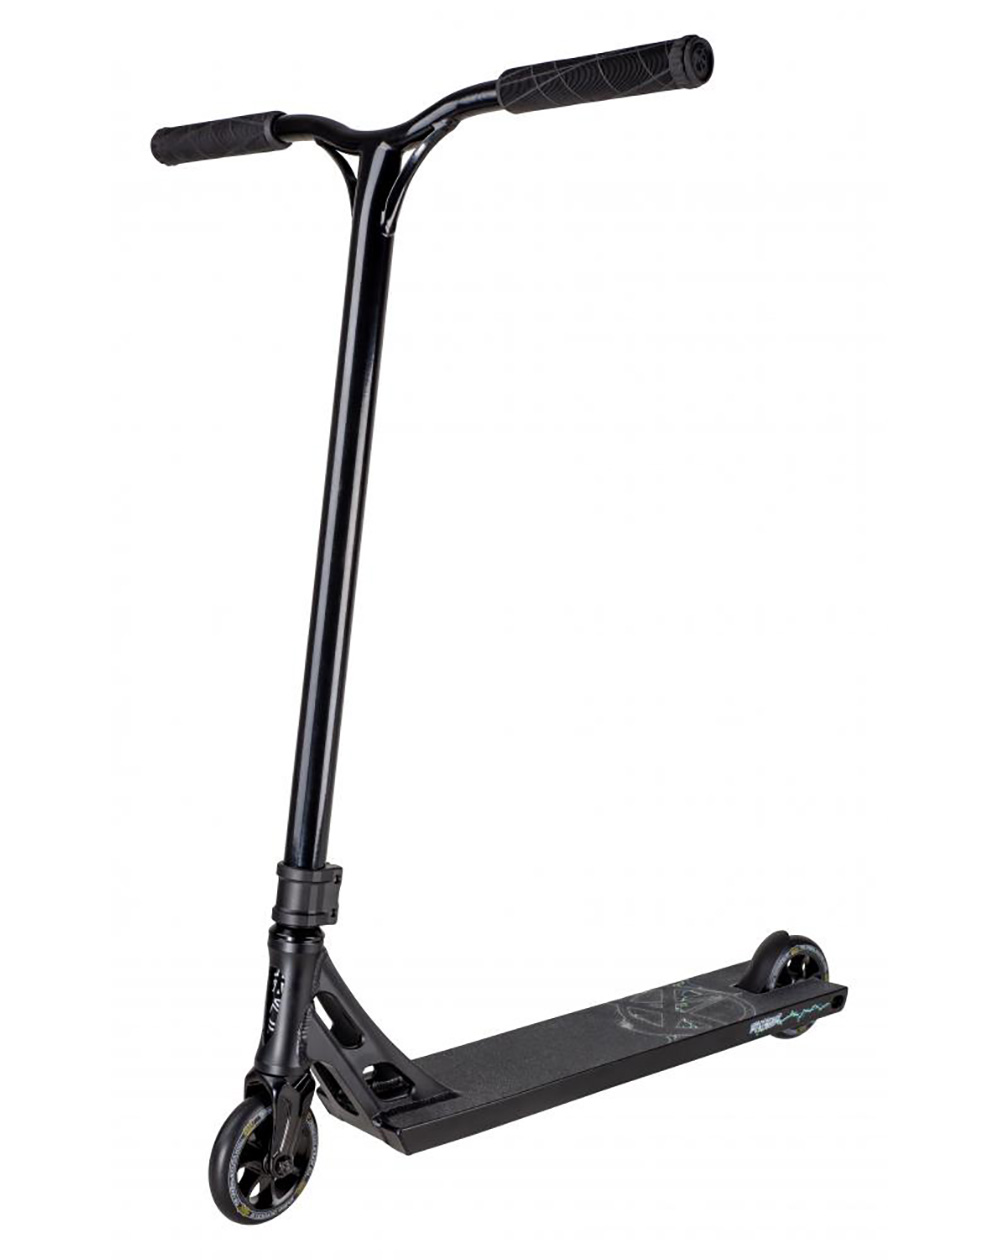 Addict Equalizer Stunt Scooter Black/Black